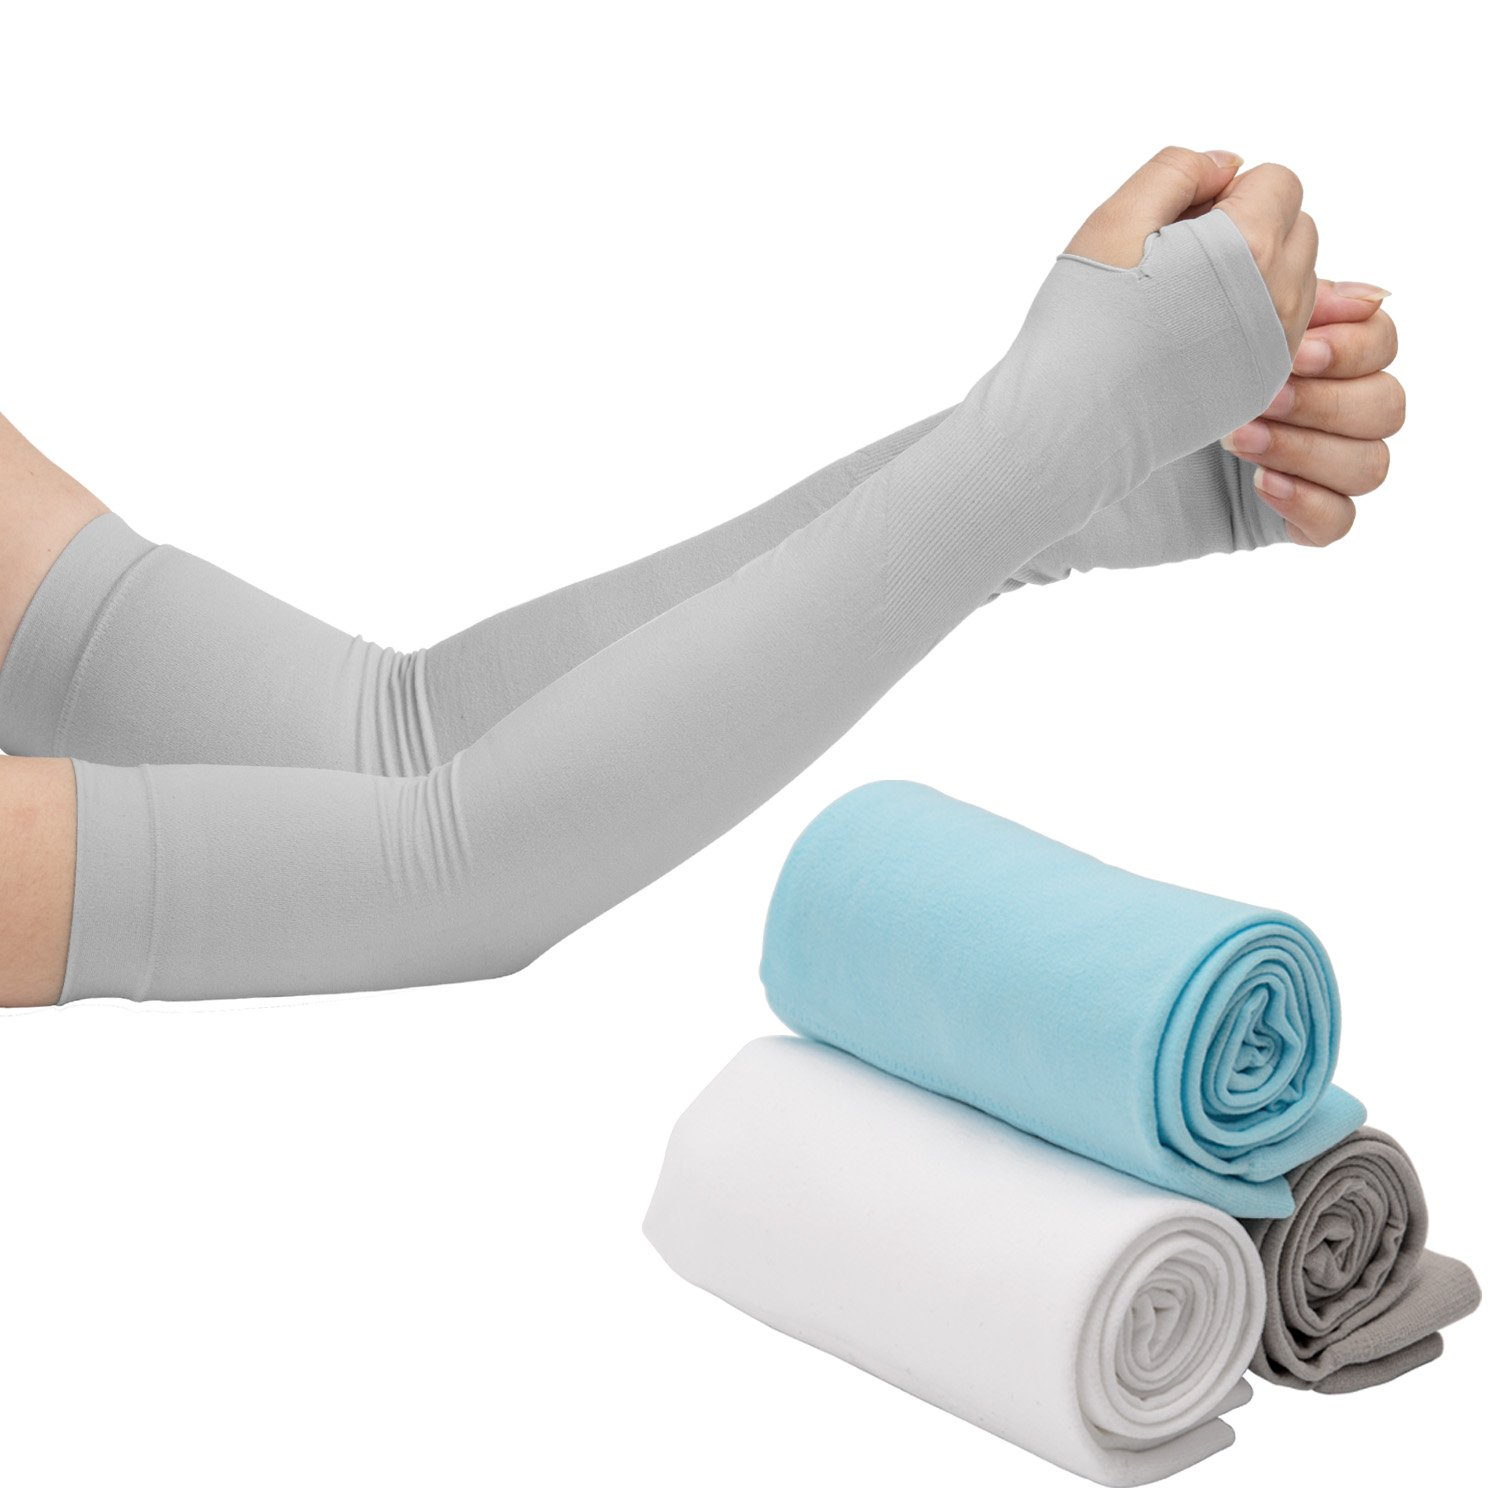 LUTER Arm Sleeves, Arm Cooling Sleeve Covers With UV Sun Protection, Anti Mosquito Bites Special Material and Compression Design for Cycling/Golf/Running/Basketbal/Driving/Climbing For Men and Women by LUTER (Image #1)